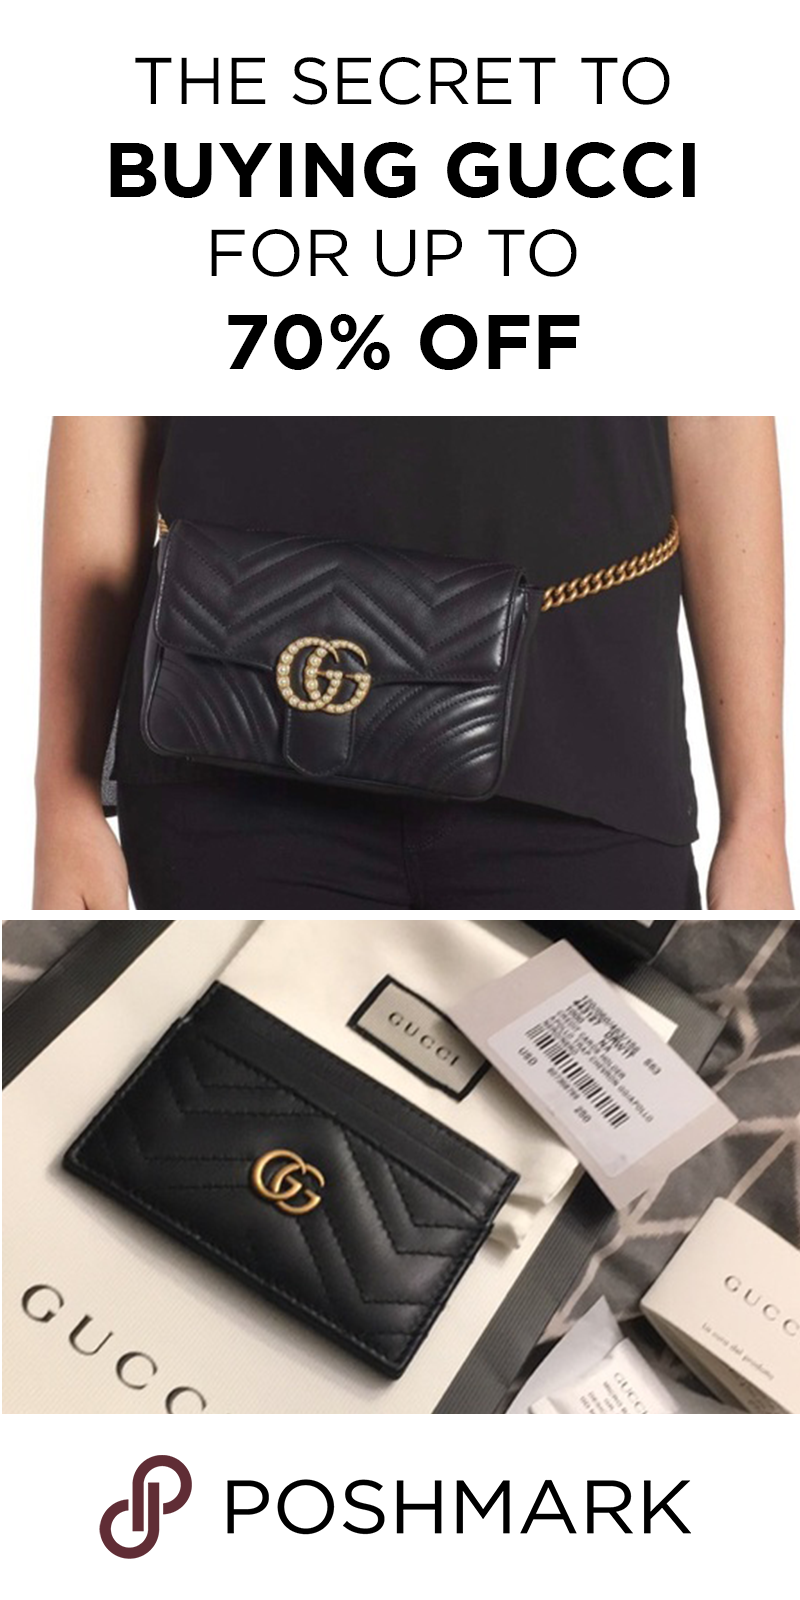 9217276bff1b Find pre-owned Gucci designer handbags   backpacks for cheap on Poshmark.  Download the app to shop and save.